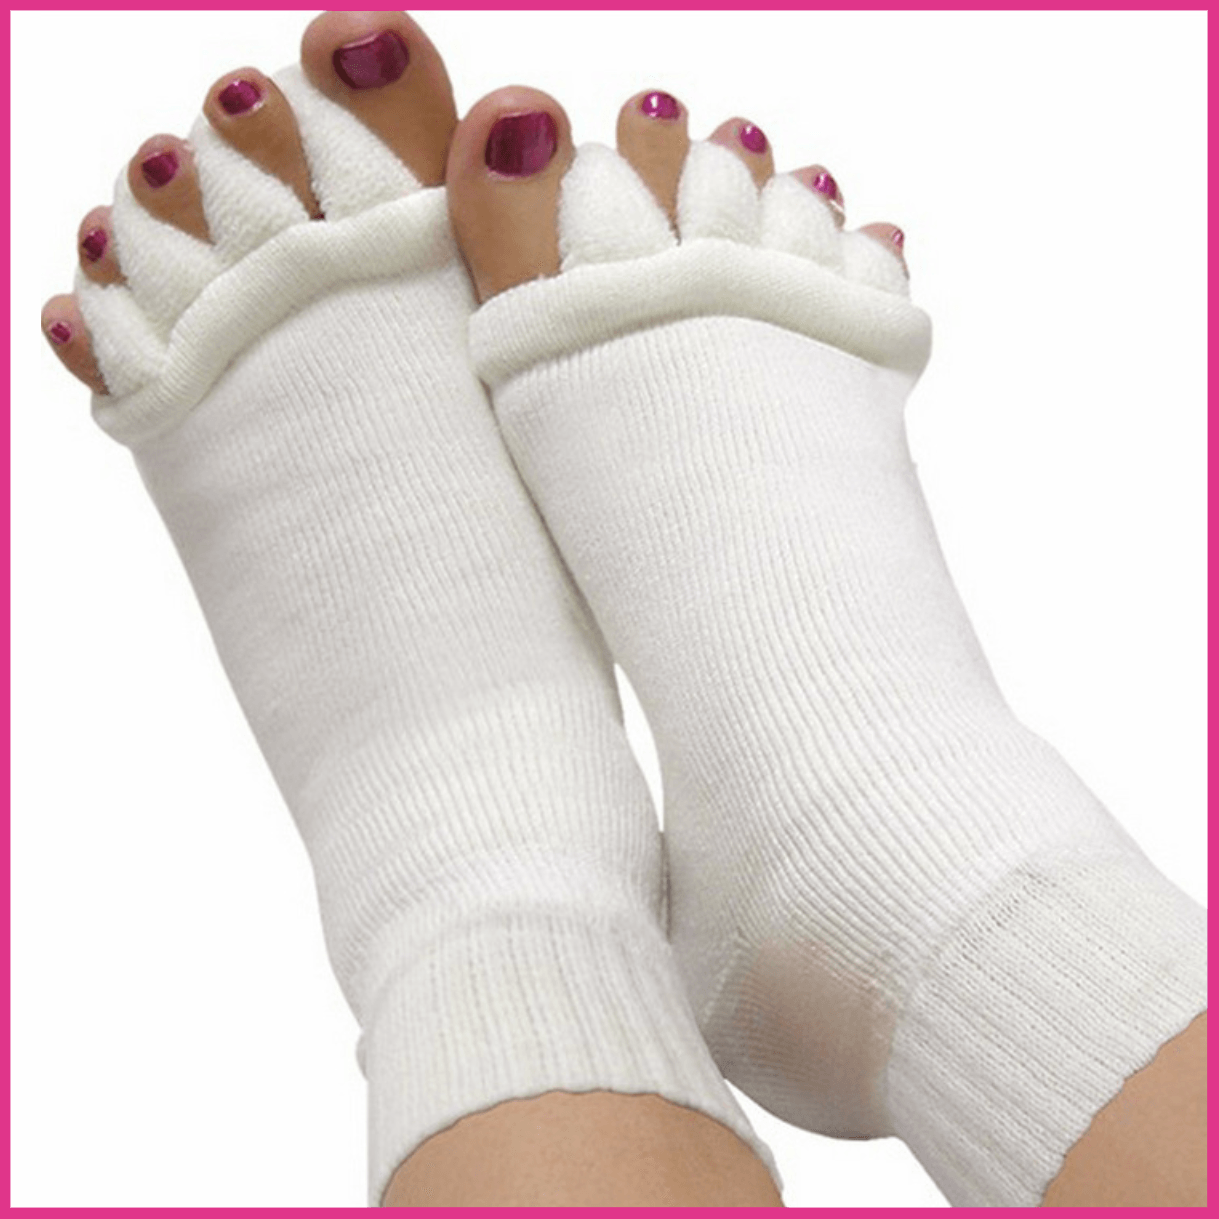 Medical Grade Comfort Foot Alignment Socks